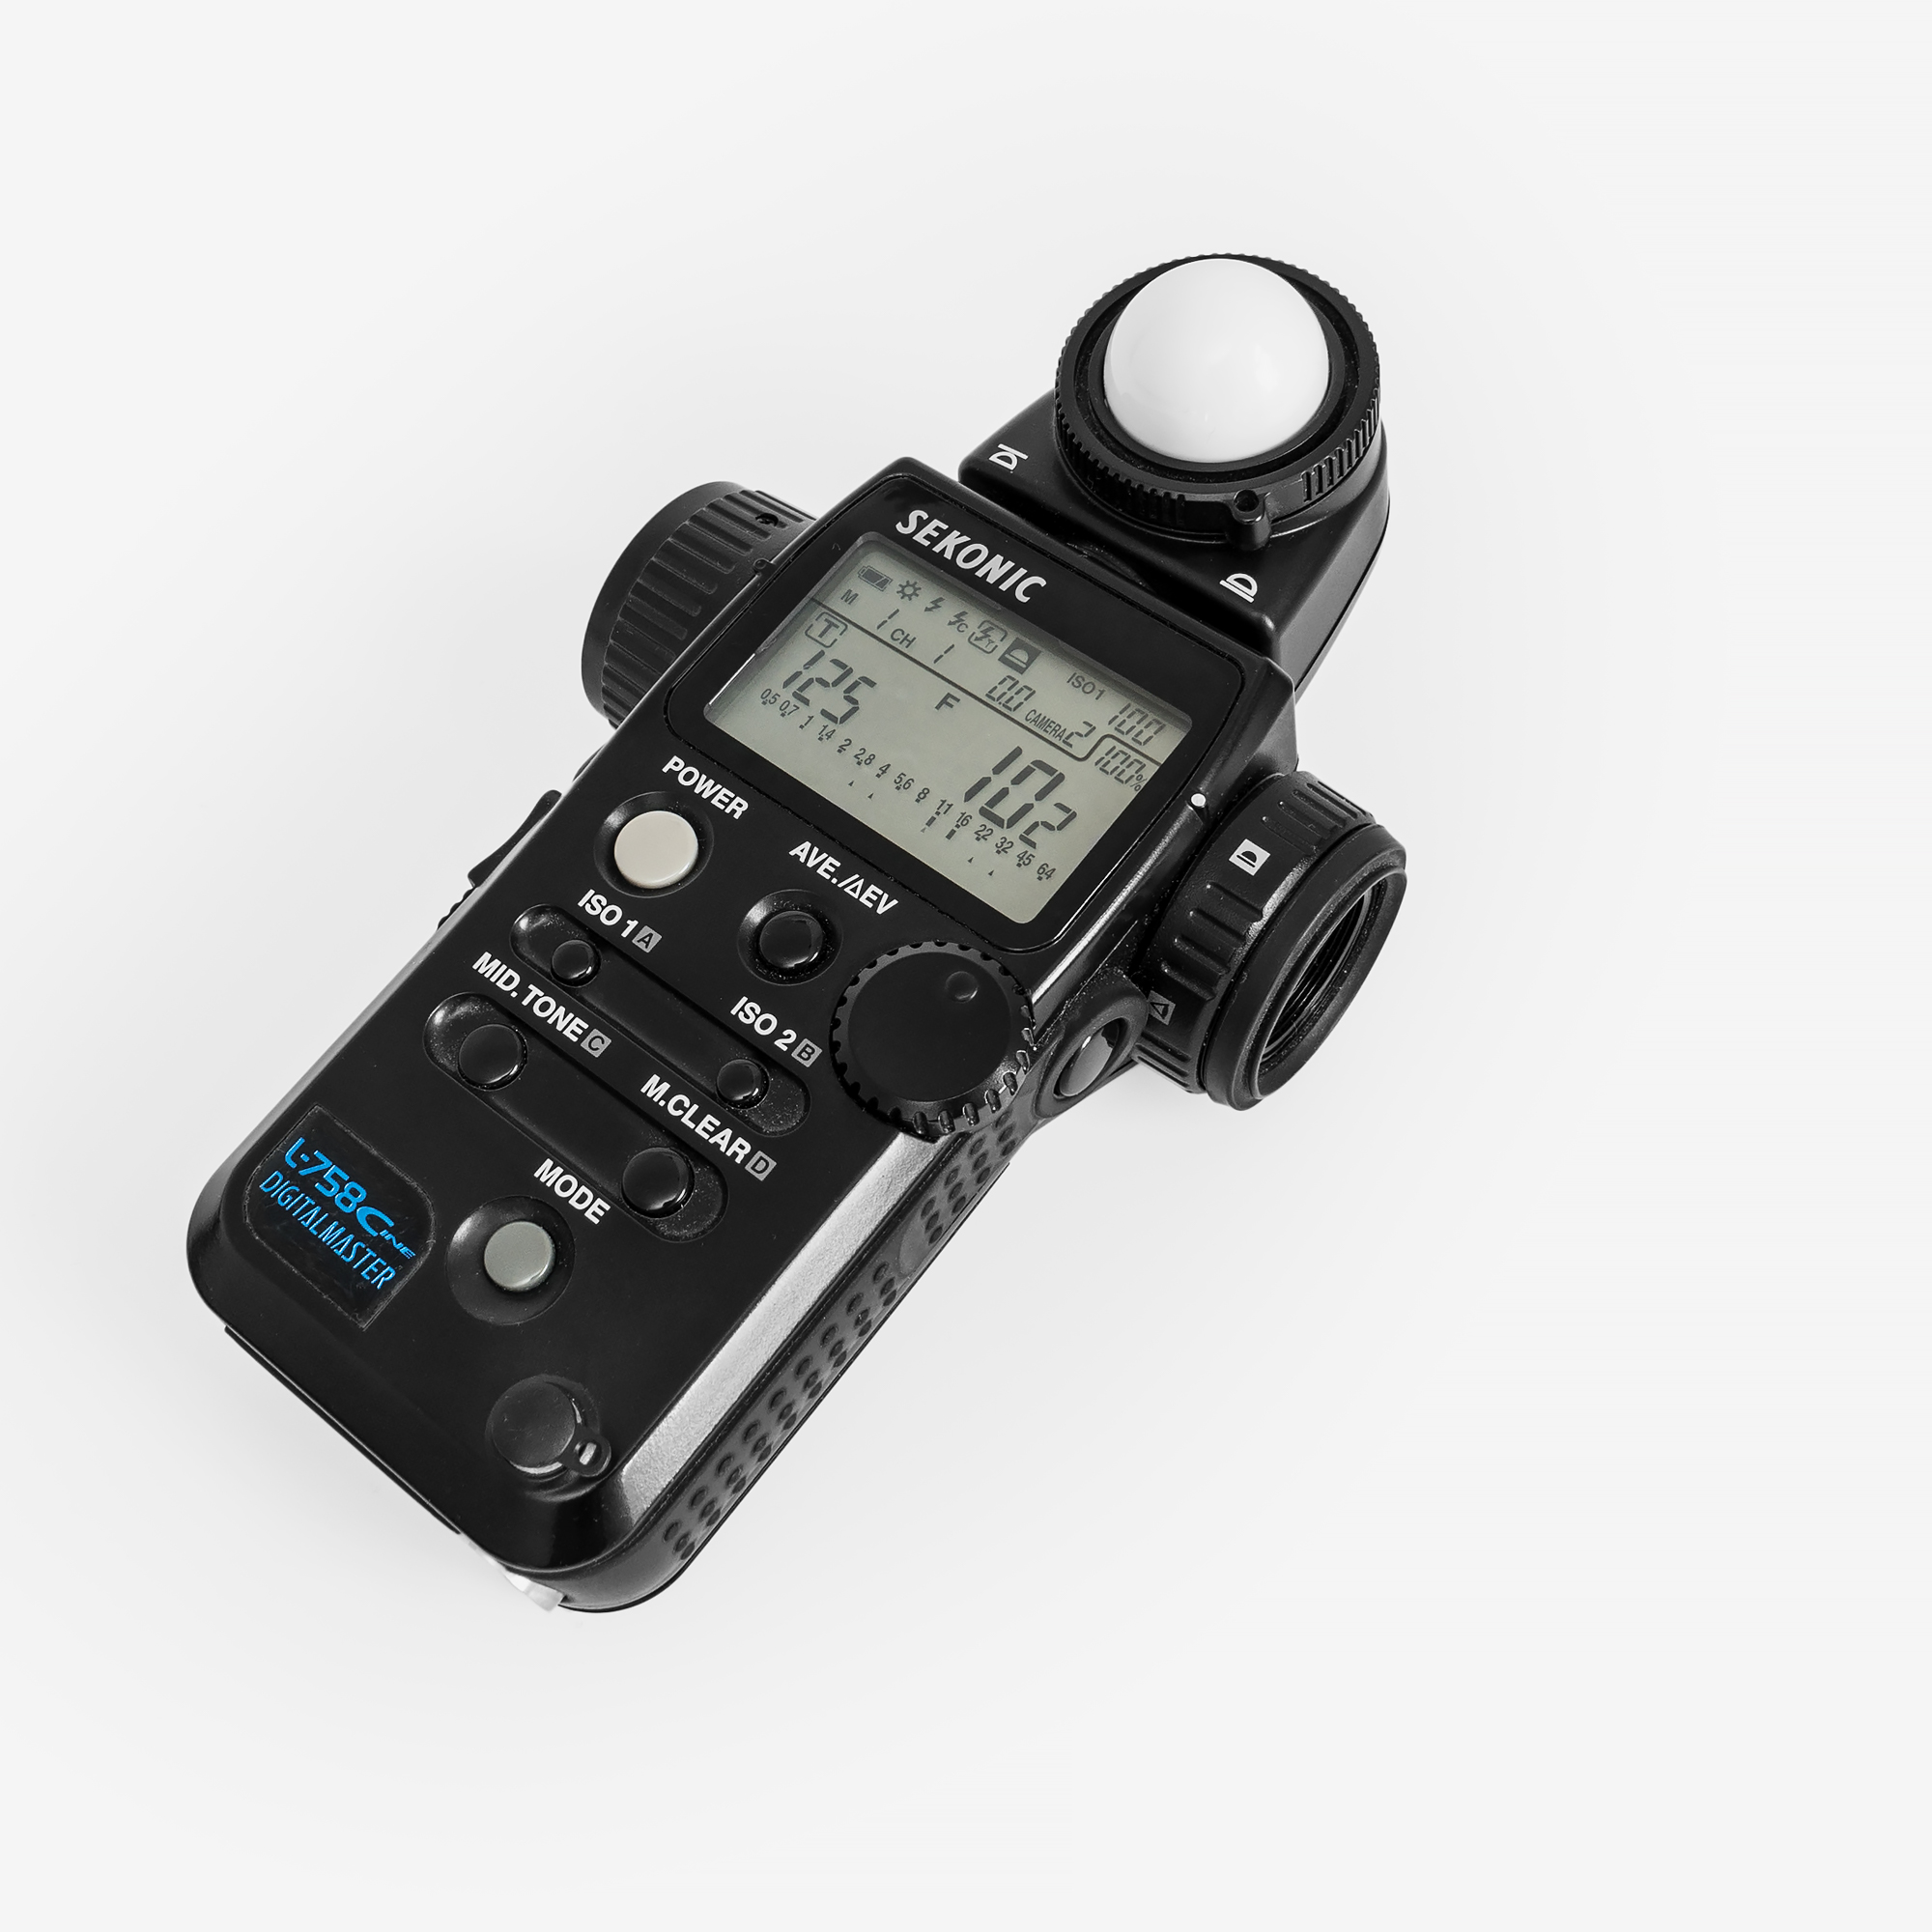 TRIGGERWIZARD - If you own a Sekonic® lightmeter (for example the L-758DR) you are able to use an Elinchrom Skyport®, Profoto Air Sync/Air Remote® or Hensel Strobe Wizard® wireless system module right in your lightmeter. No Pocketwizards® needed. Check it out by clicking on the image...